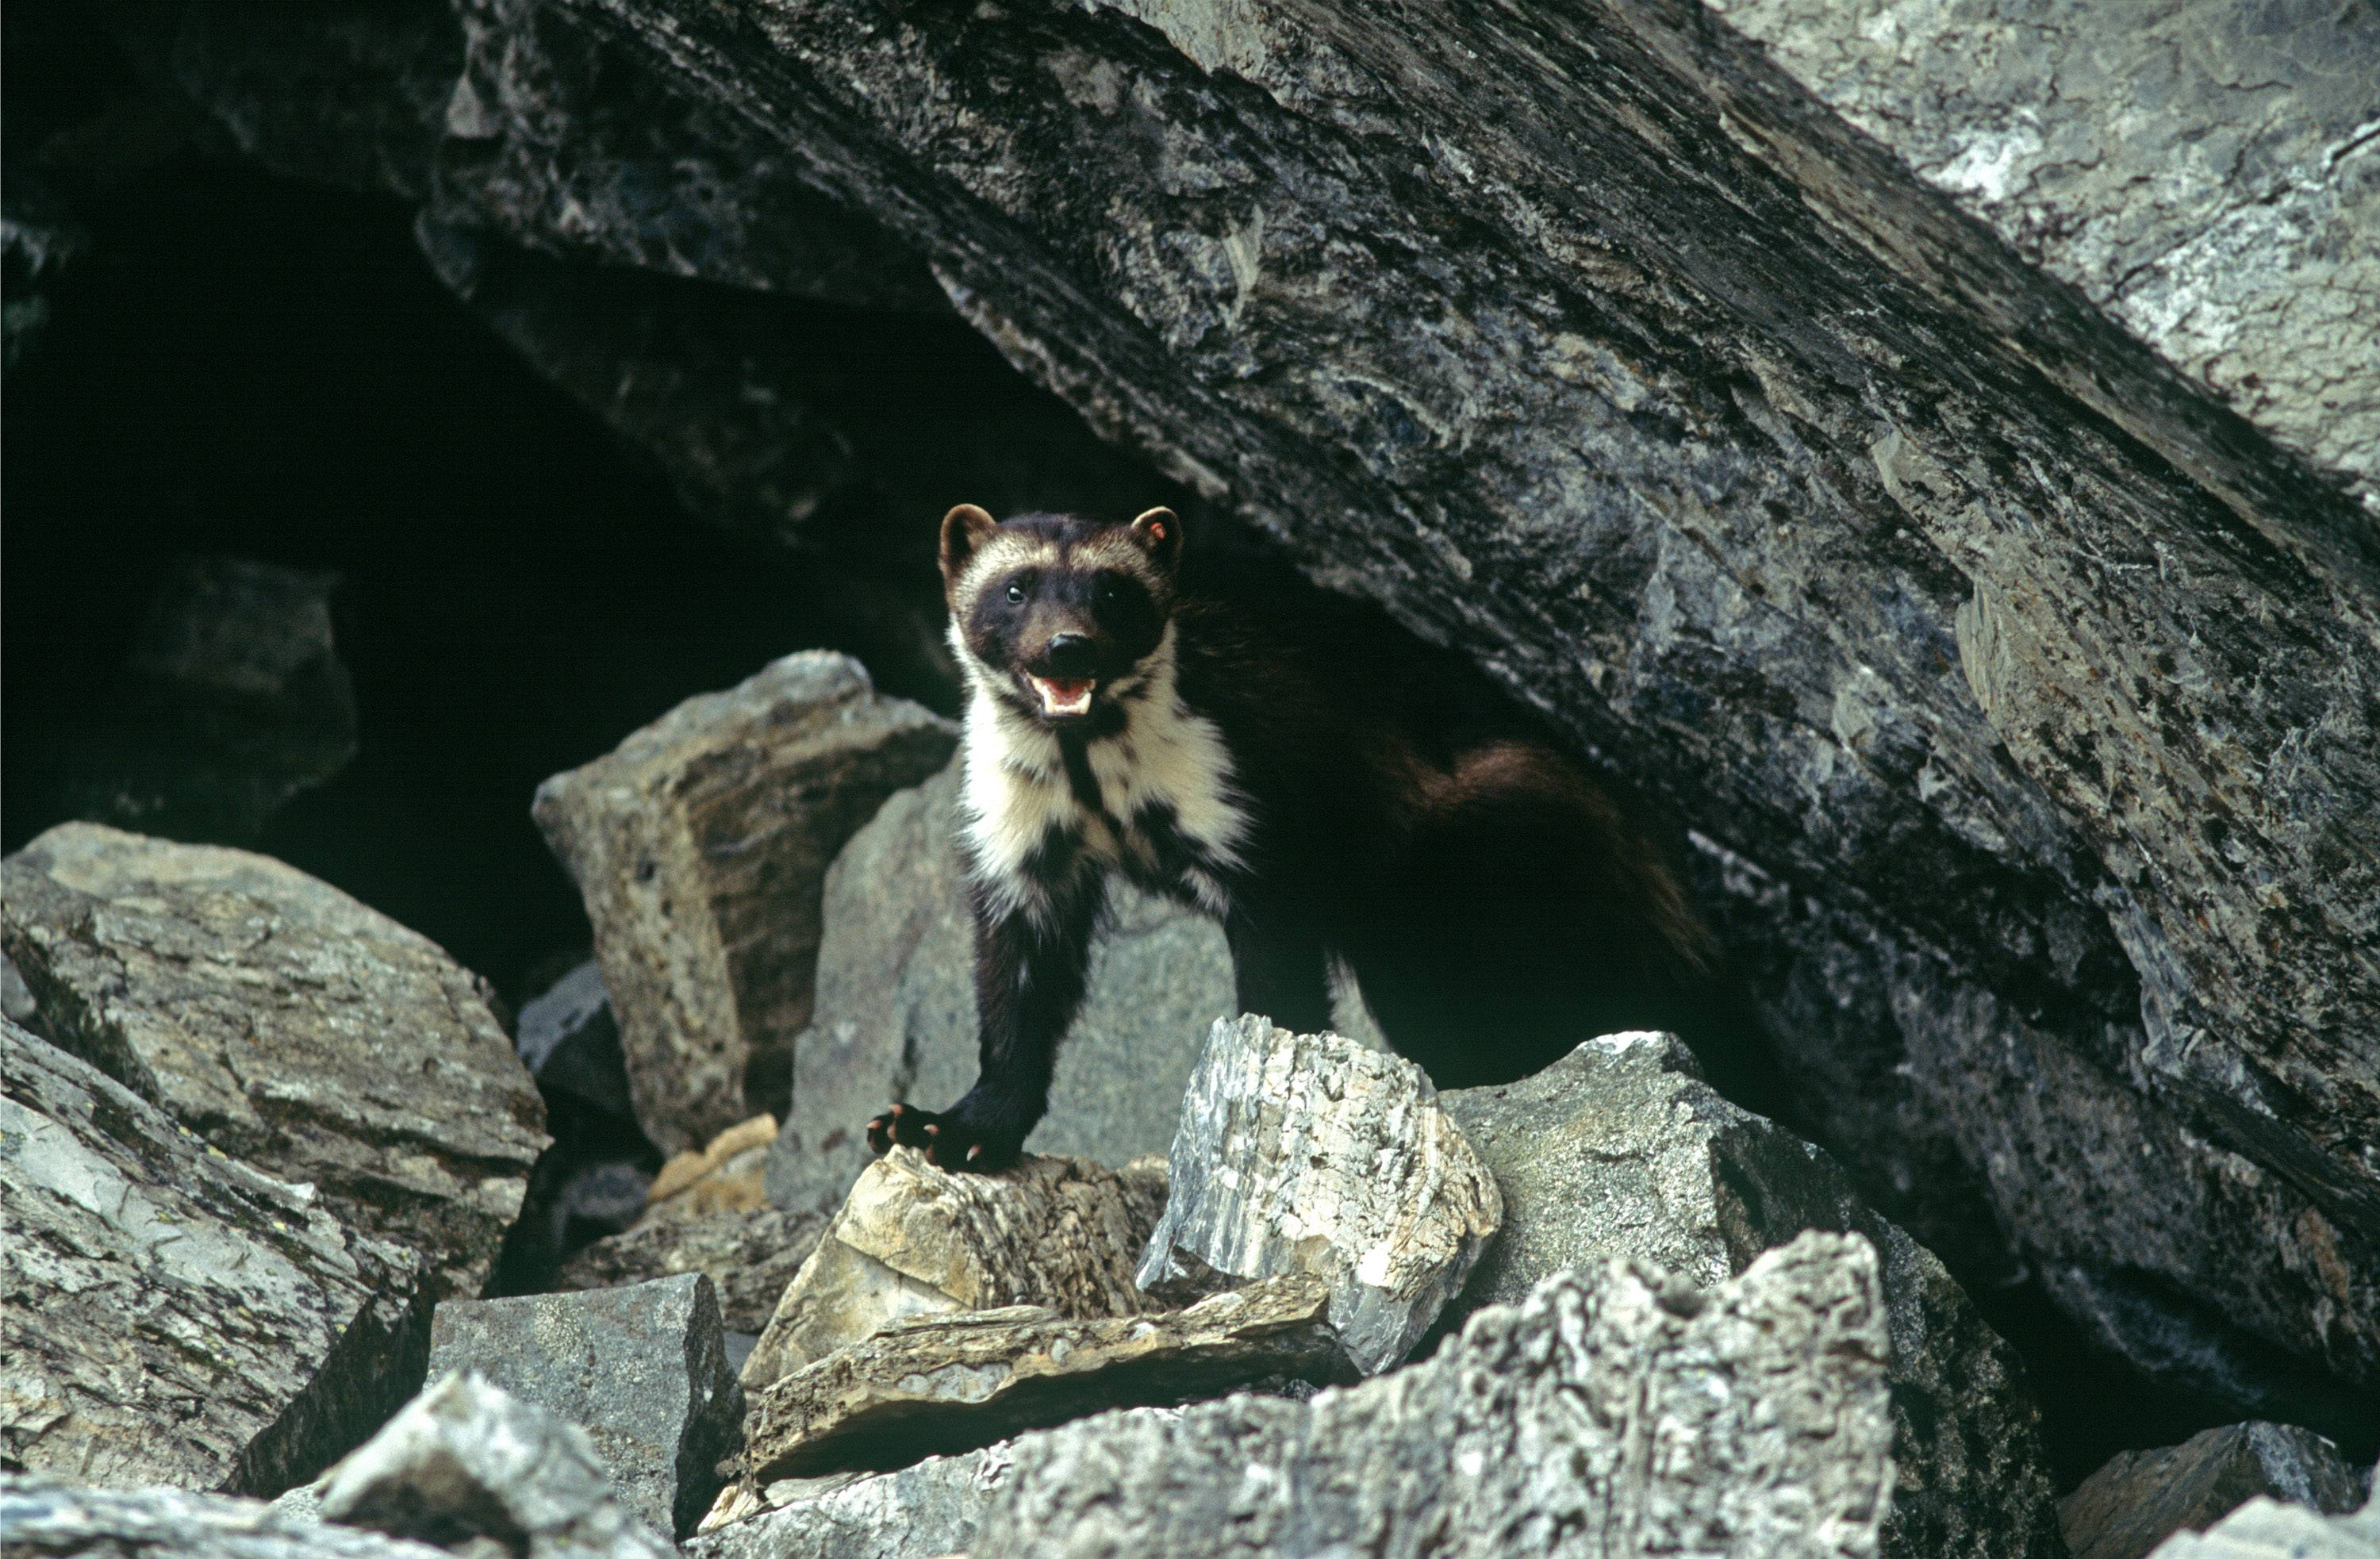 This undated photo provided by Defenders Of Wildlife shows a wolverine that had been tagged for research purposes in Glacier National Park, Mont.